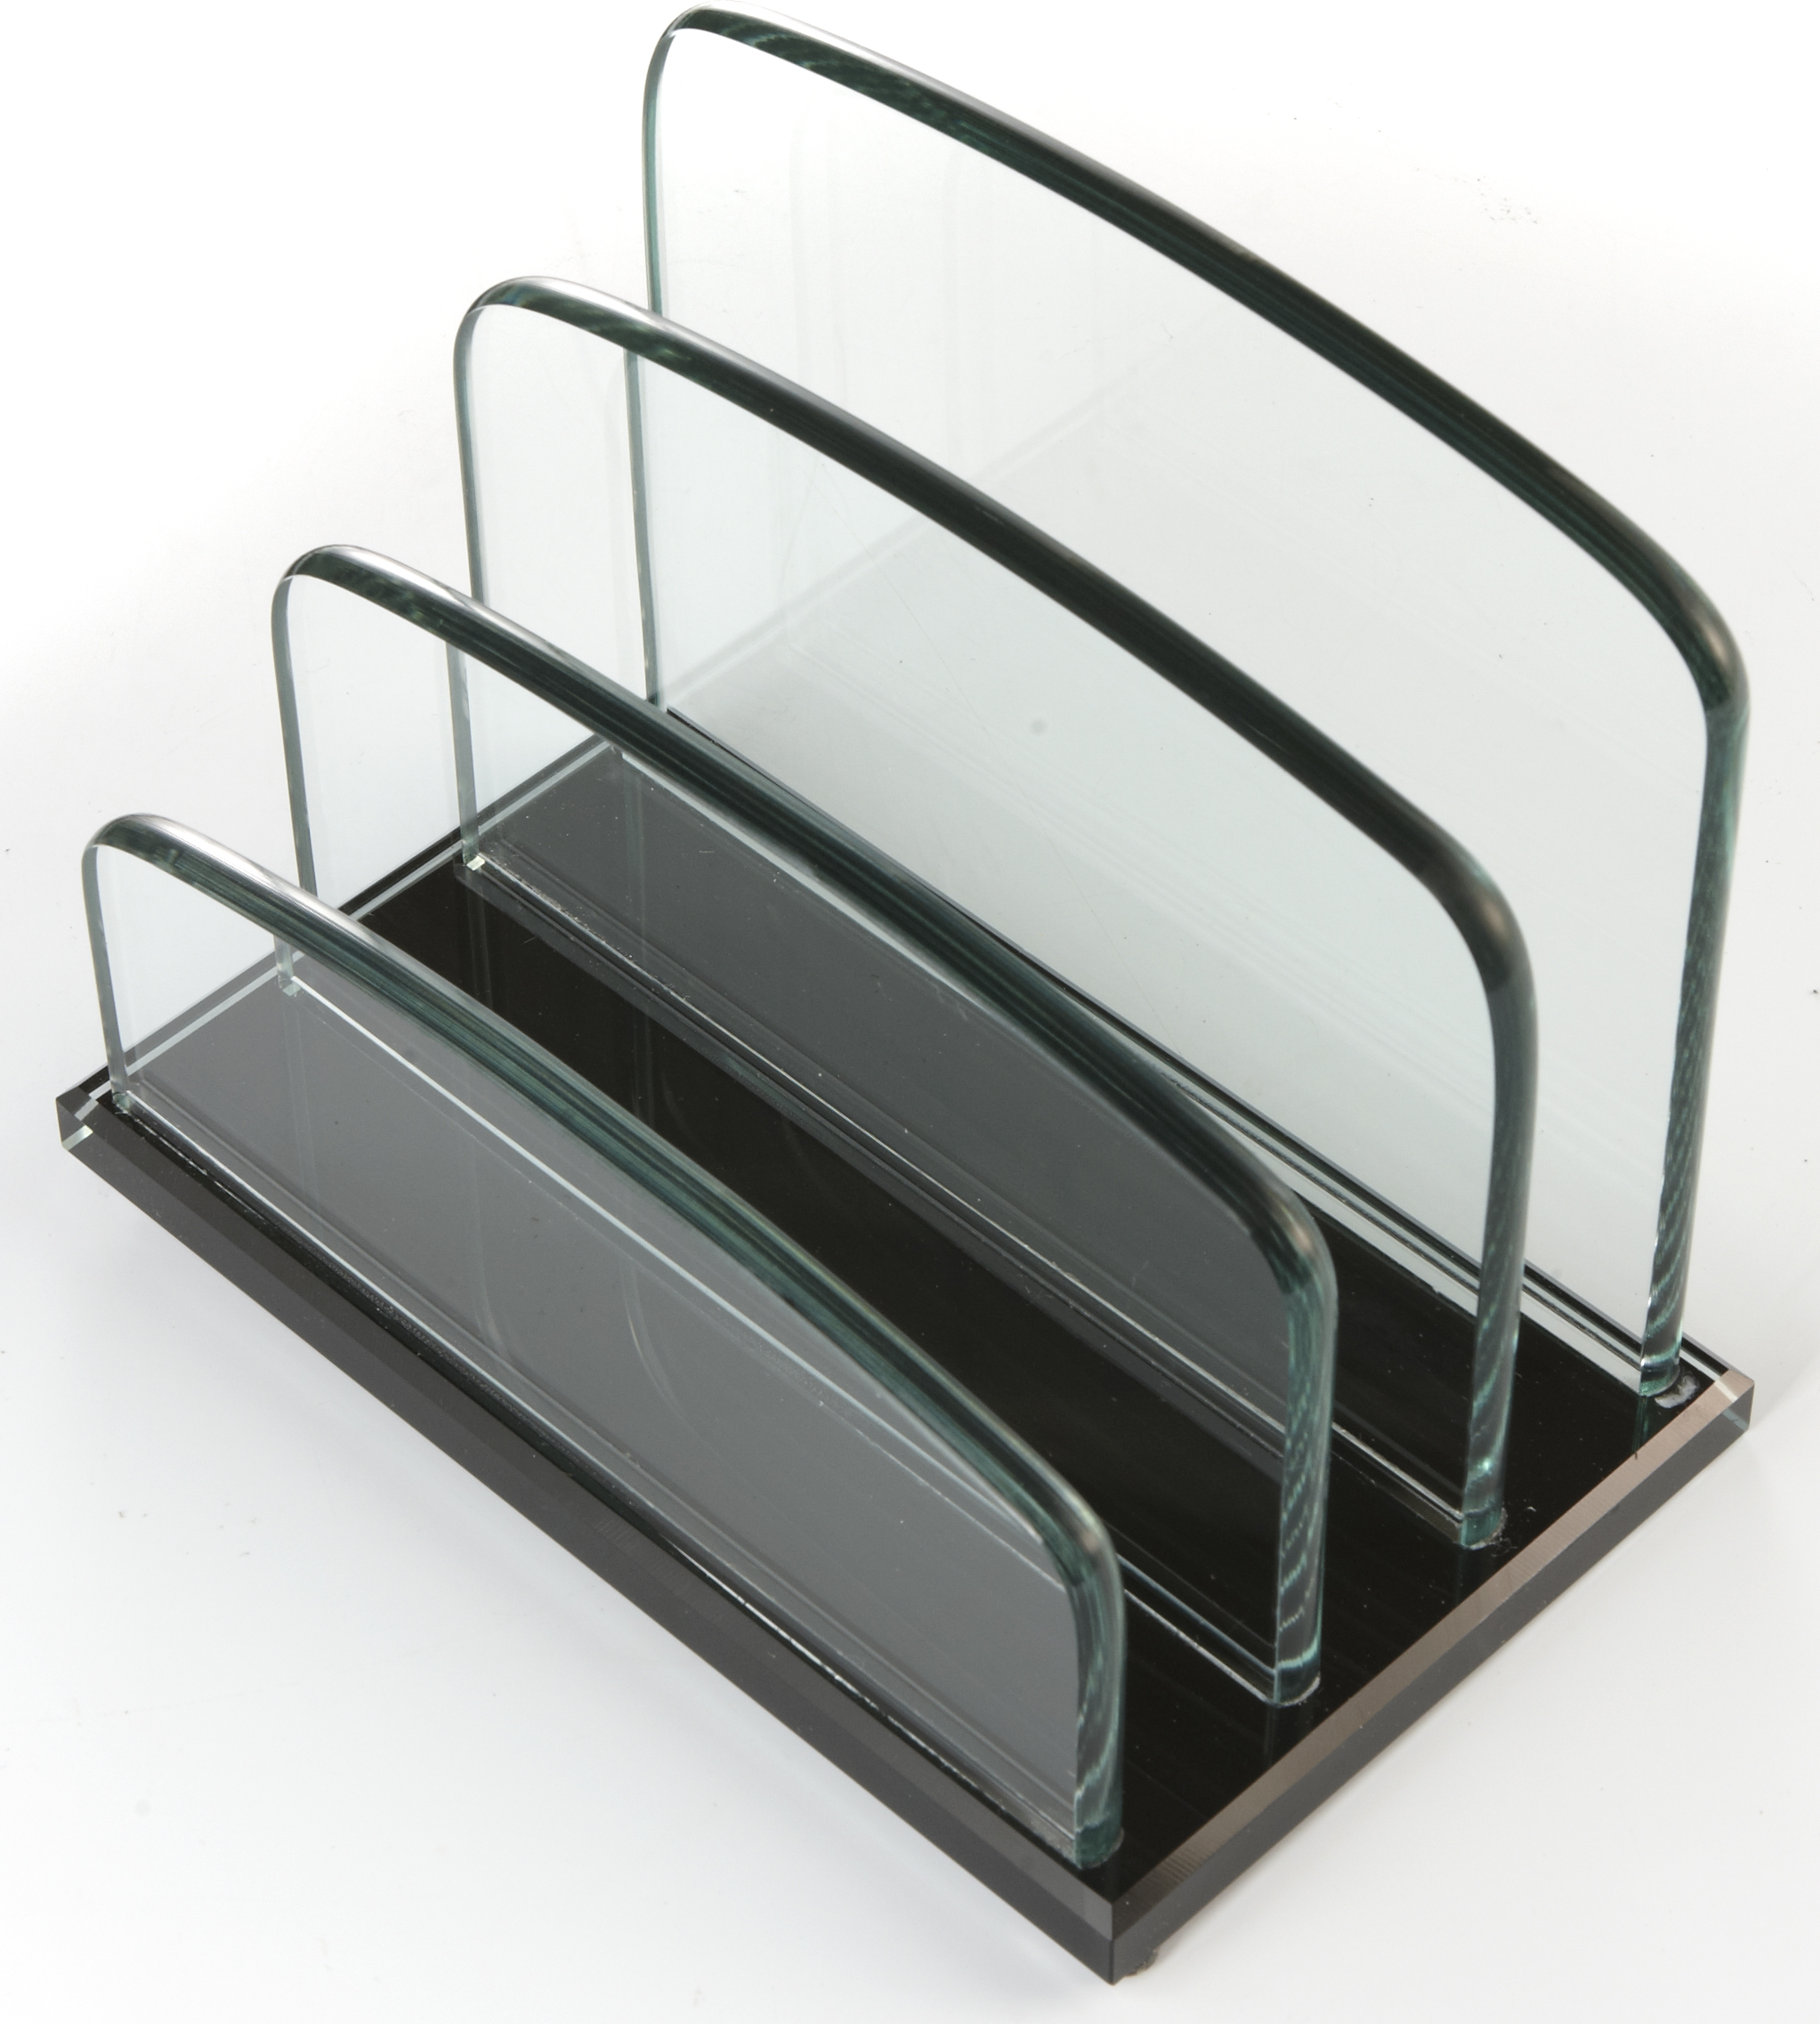 Storex Executive Vertical Sorter,Glass (Case of 4)